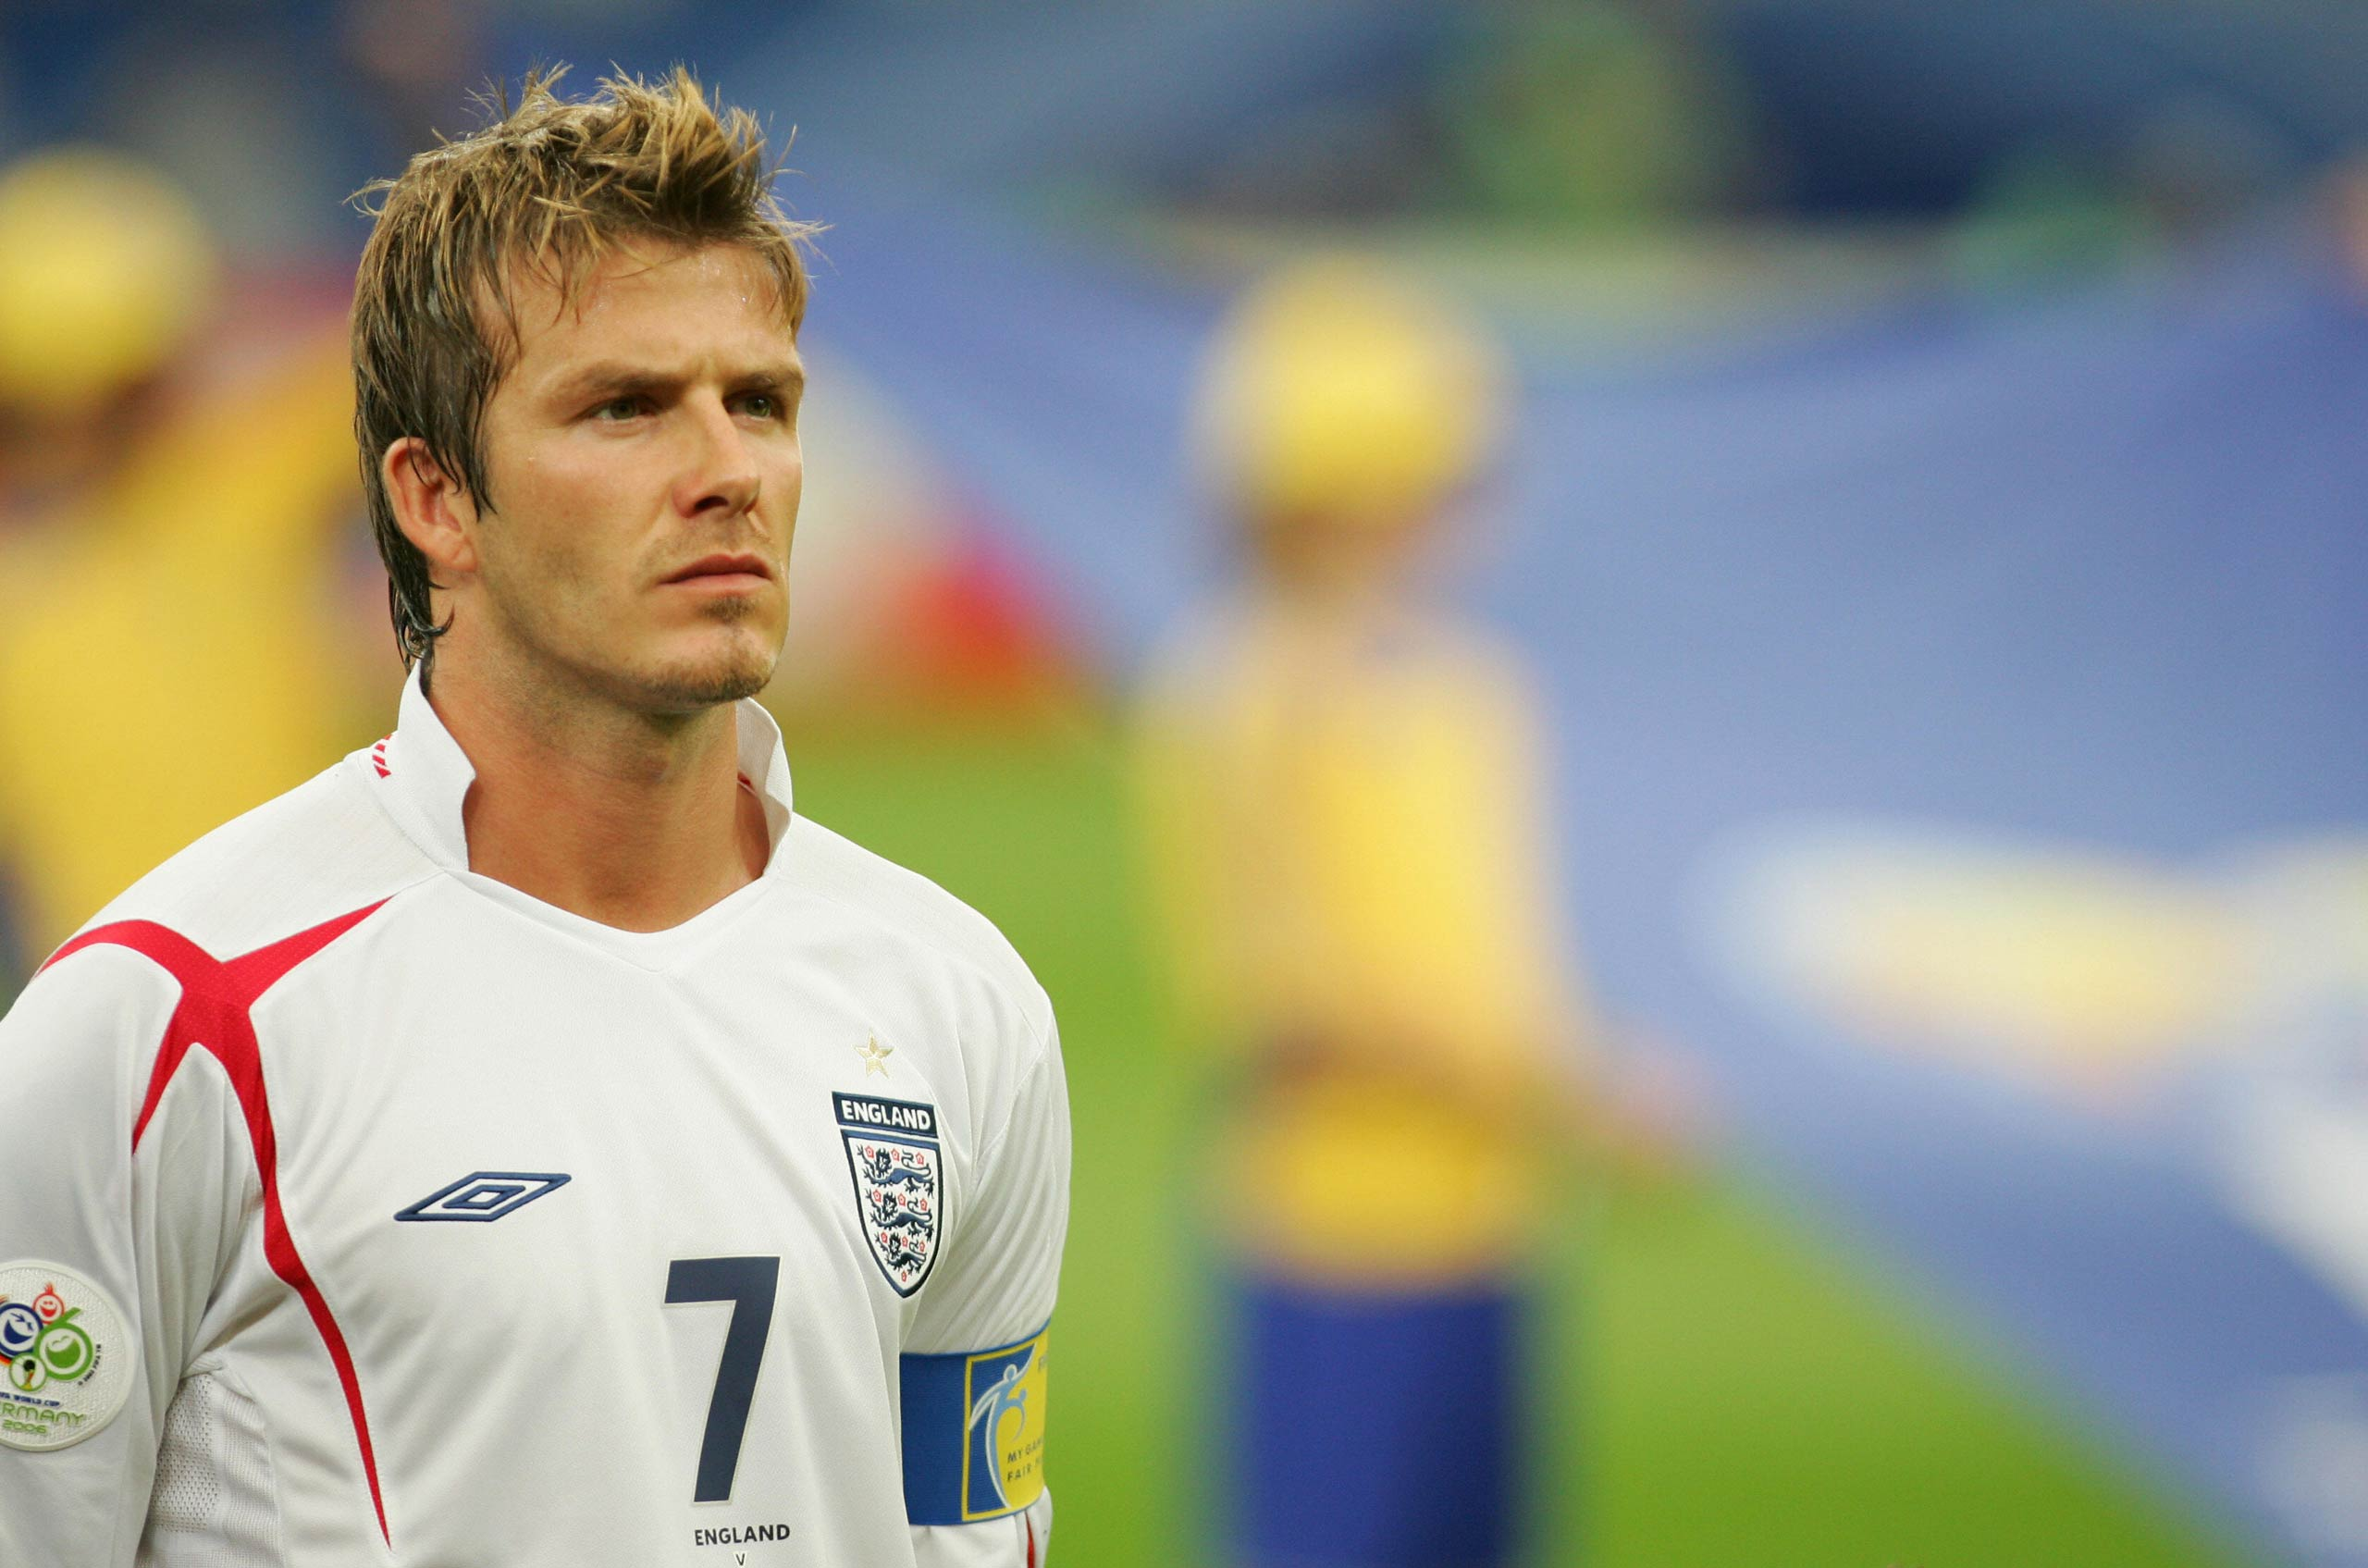 English midfielder and captain David Beckham listens to his national anthem prior to the World Cup 2006 quarter final soccer game between England and Portugal in 2006 at Gelsenkirchen stadium in Gelsenkirchen, Germany.